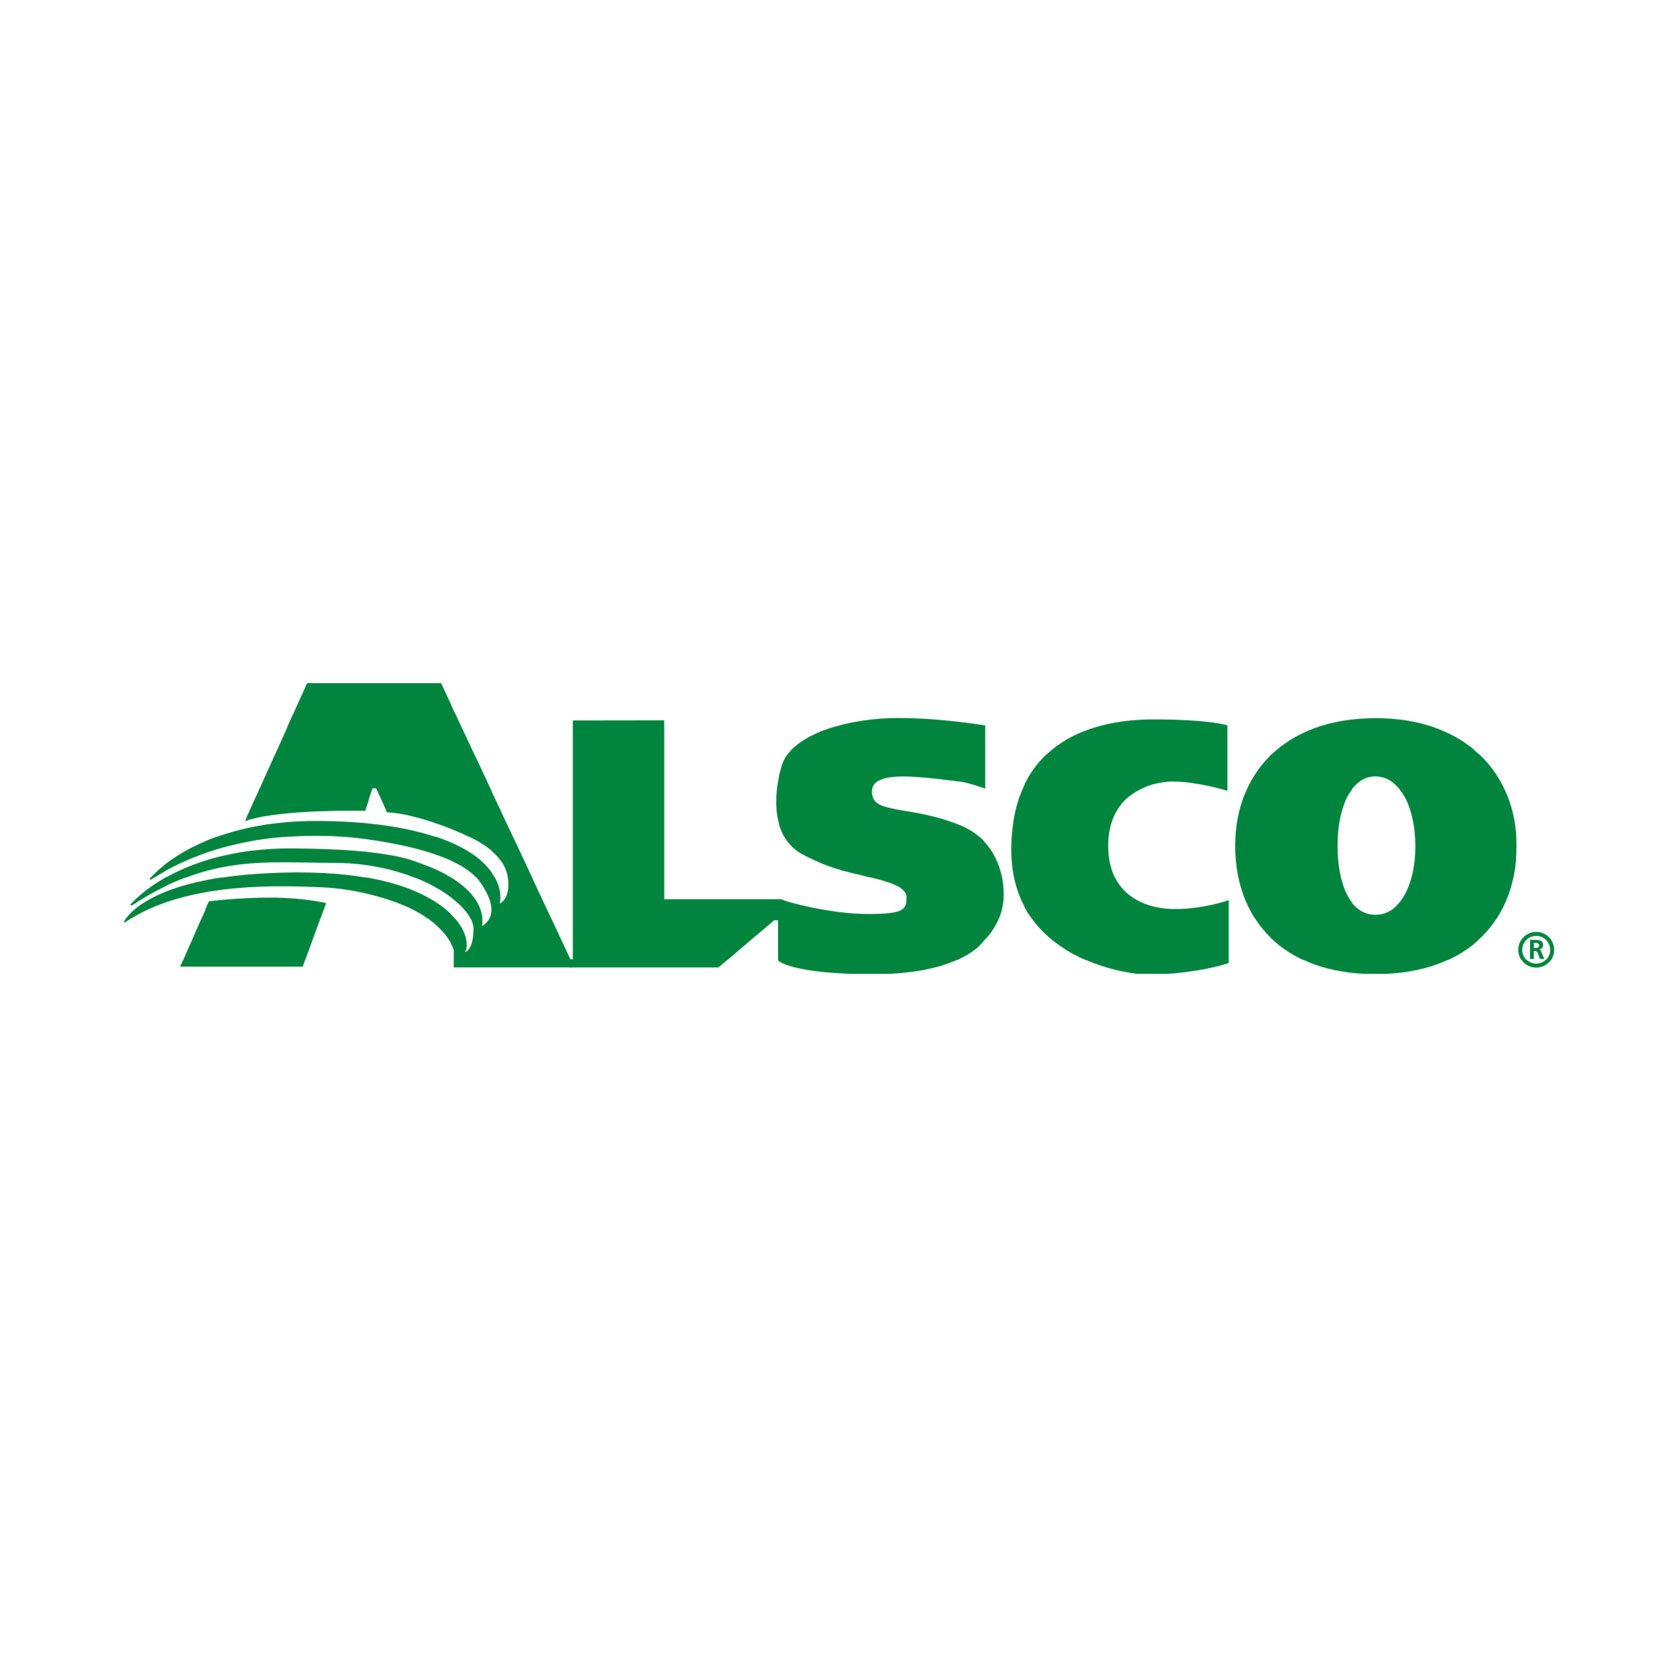 ALSCO   Thank you for providing all the tablecloths at our events!